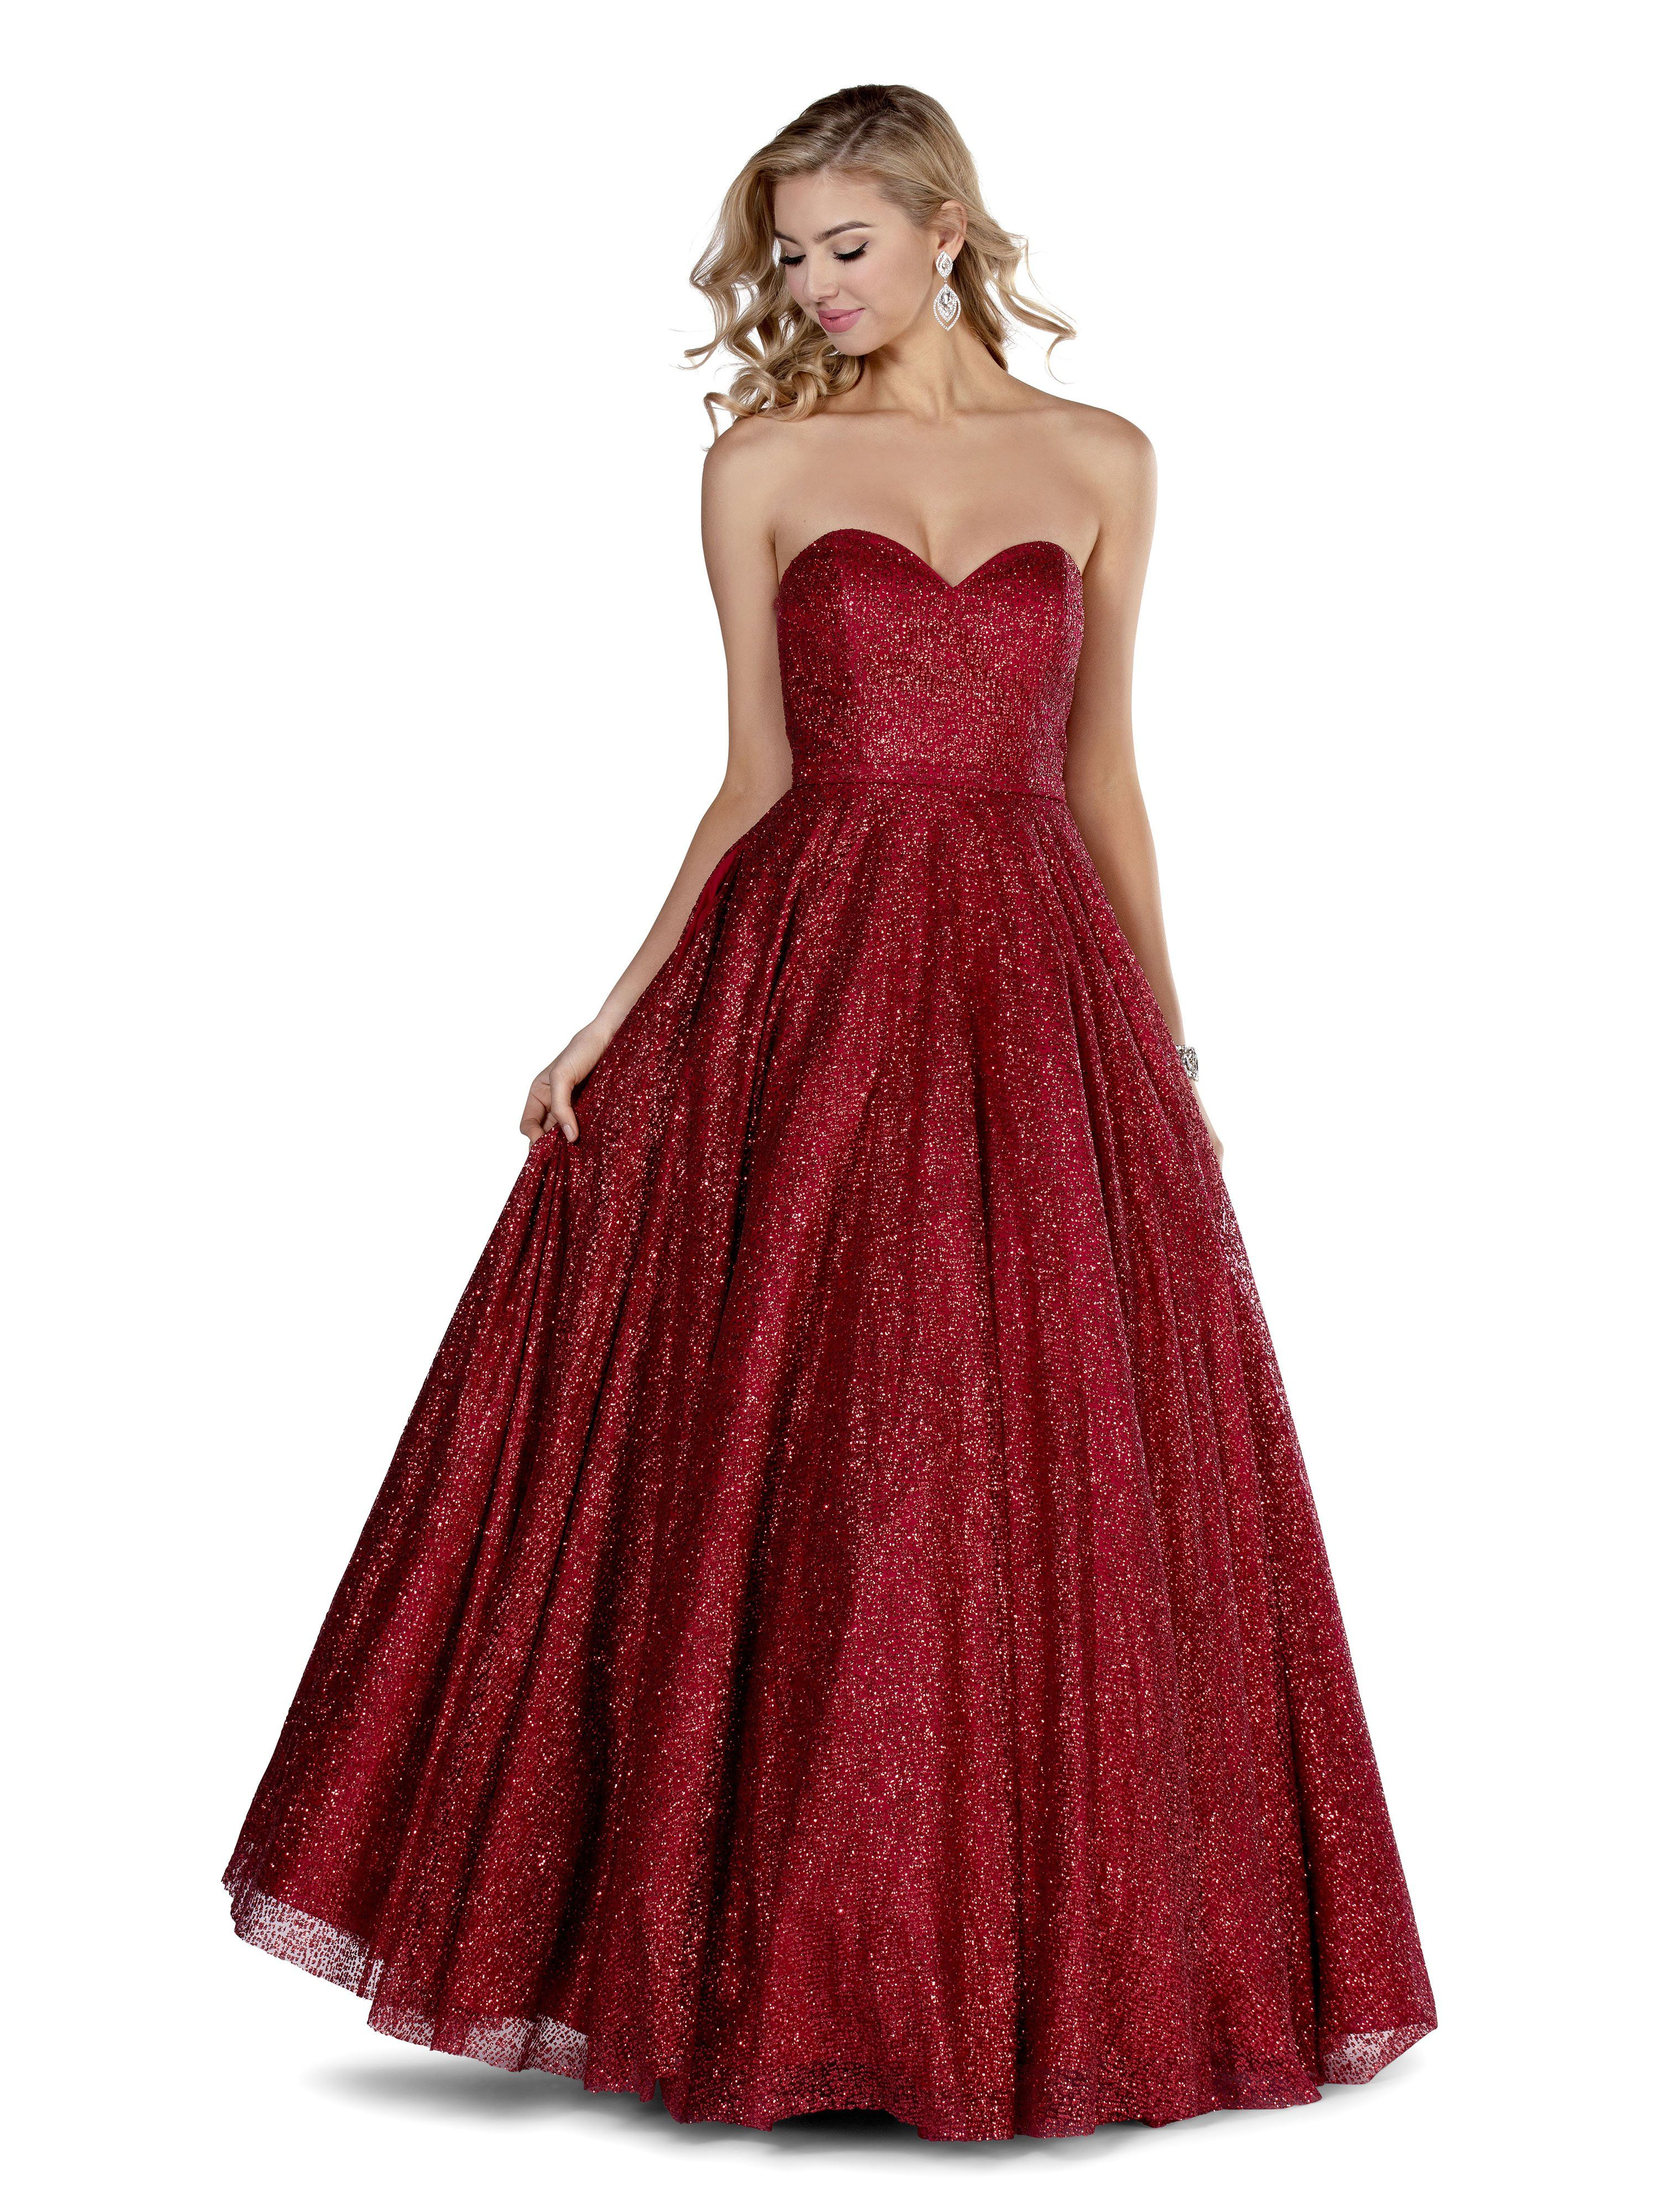 Pink Style 5804 Ball Gowns Red Ball Gowns Strapless Prom Dresses [ 4000 x 3000 Pixel ]